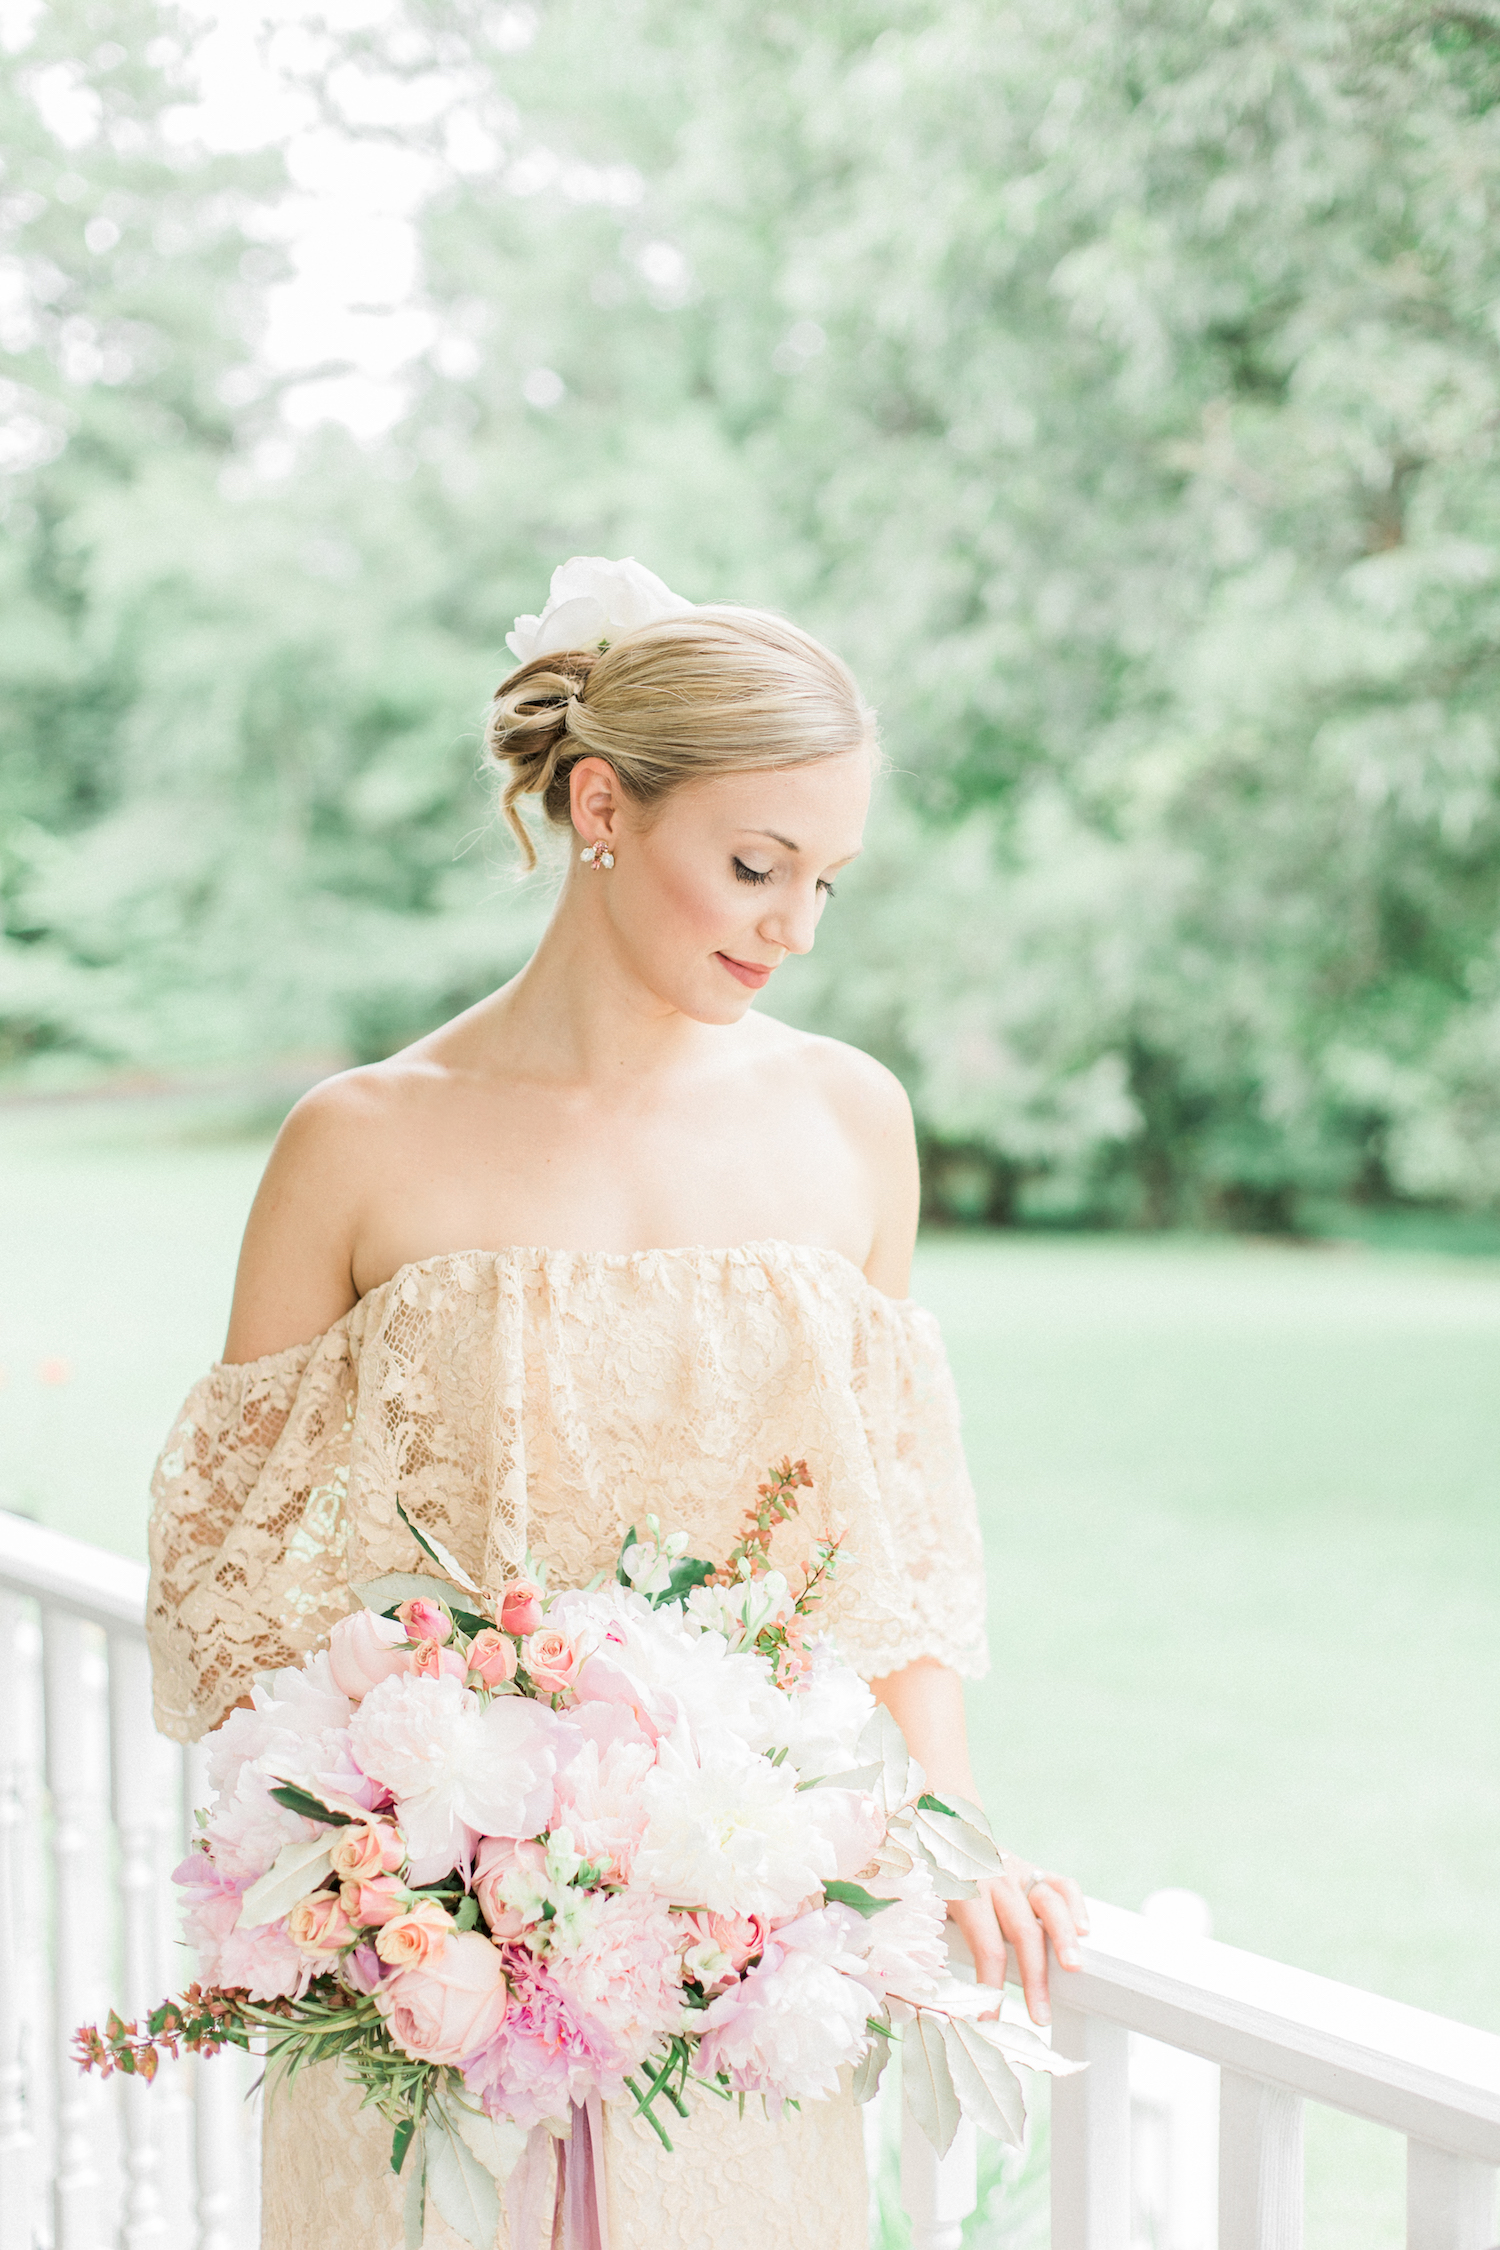 Gold off shoulder lace bohemian wedding dress. Blush wedding bouquet with peonies, dahlias, and roses.